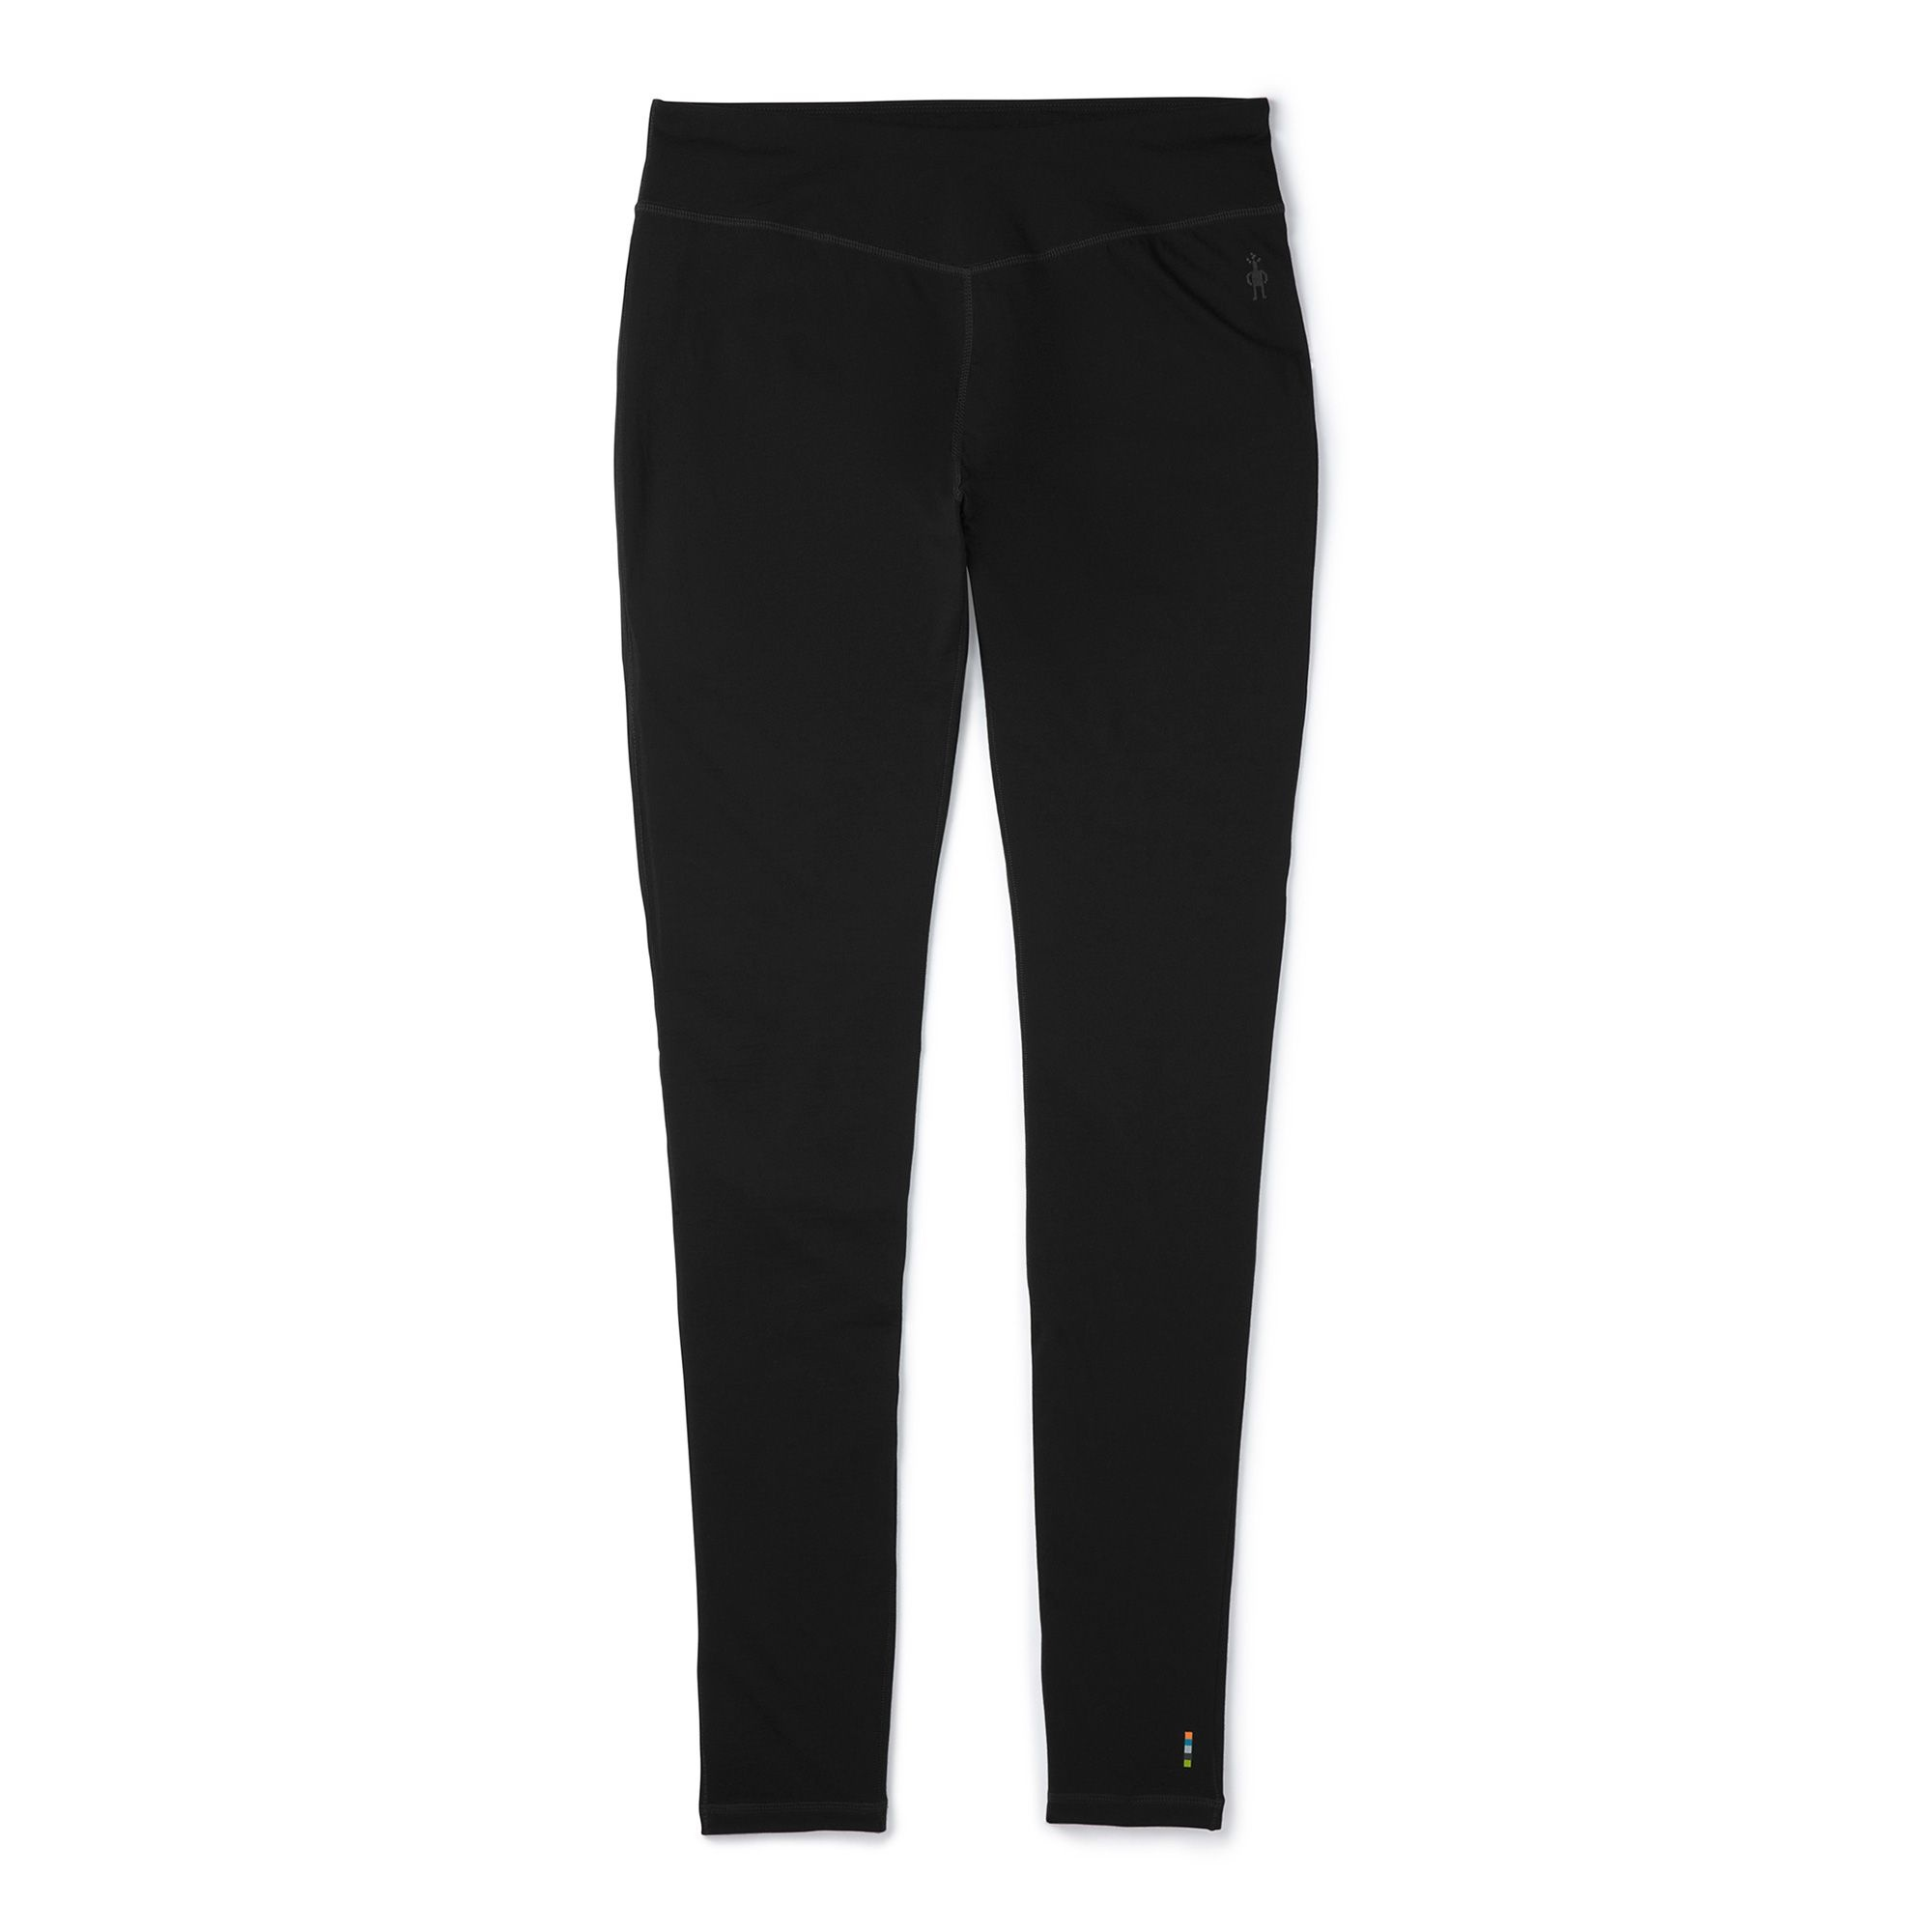 Merino 150 Baselayer Bottom - Women's